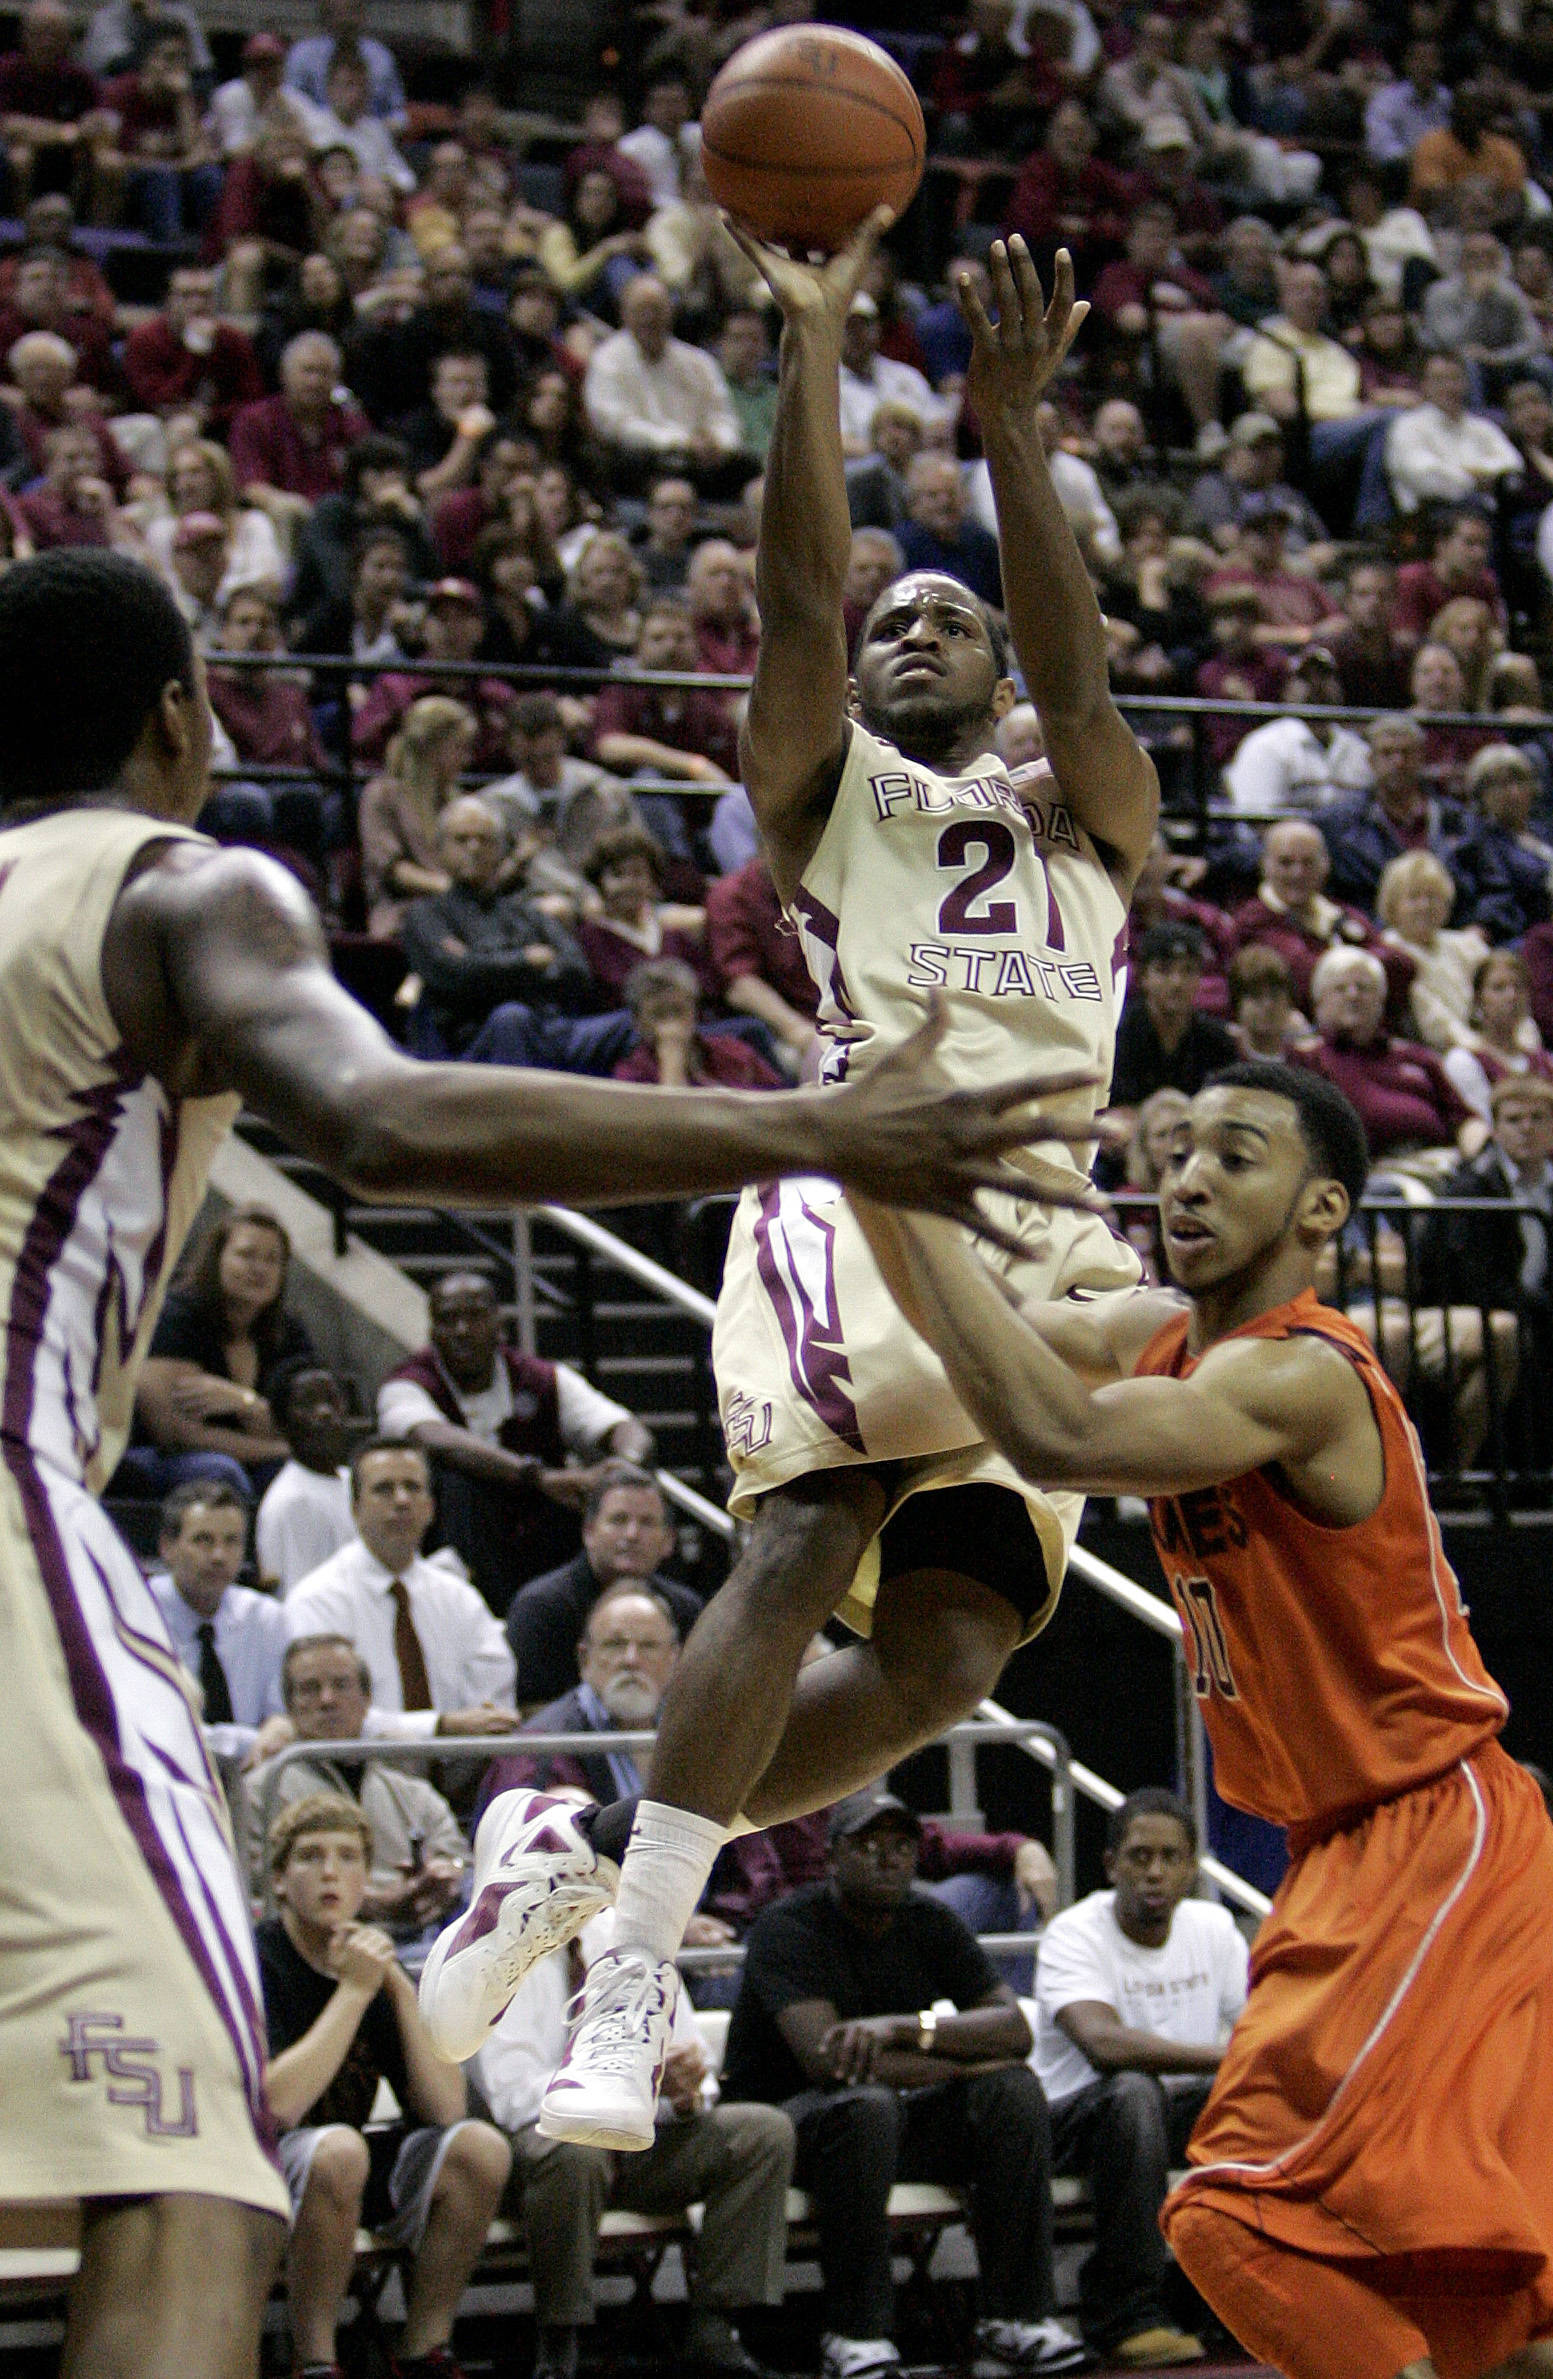 Florida State's Michael Snaer, center, shoots over Virginia Tech's Marquis Rankin, right, during the second half. (AP Photo/Steve Cannon)